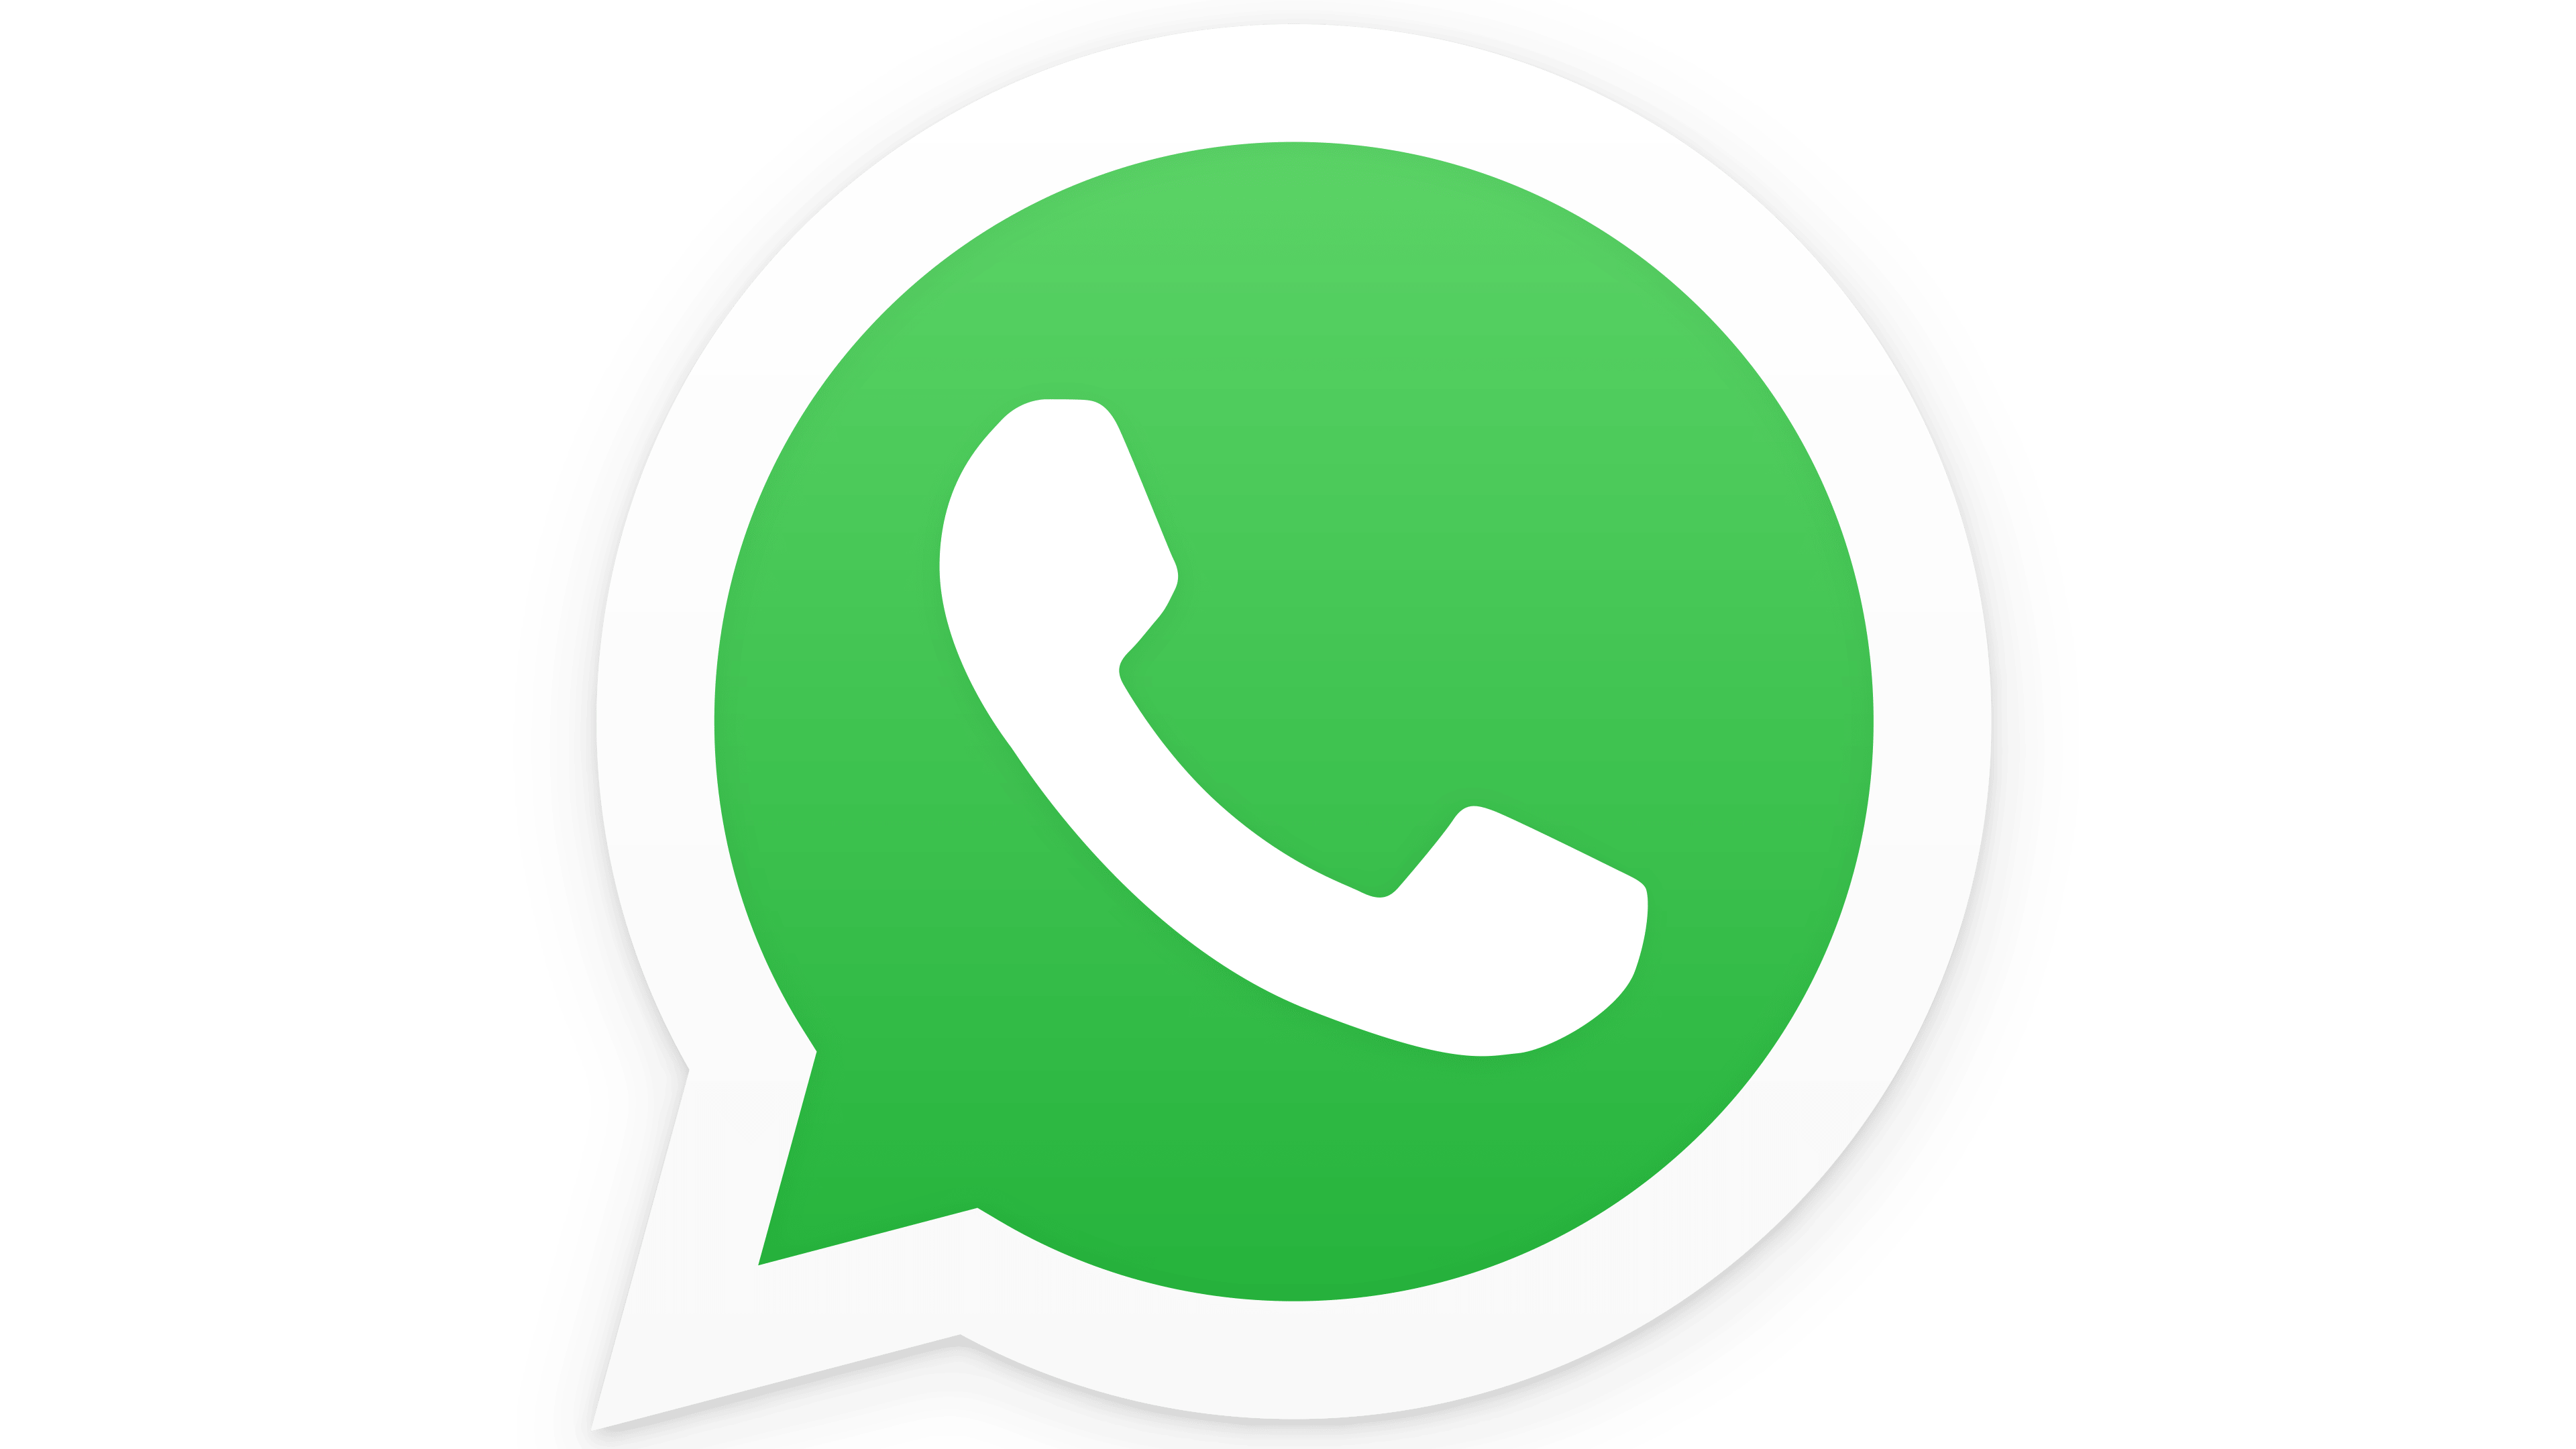 WhatsApp Logo | The most famous brands and company logos in the world